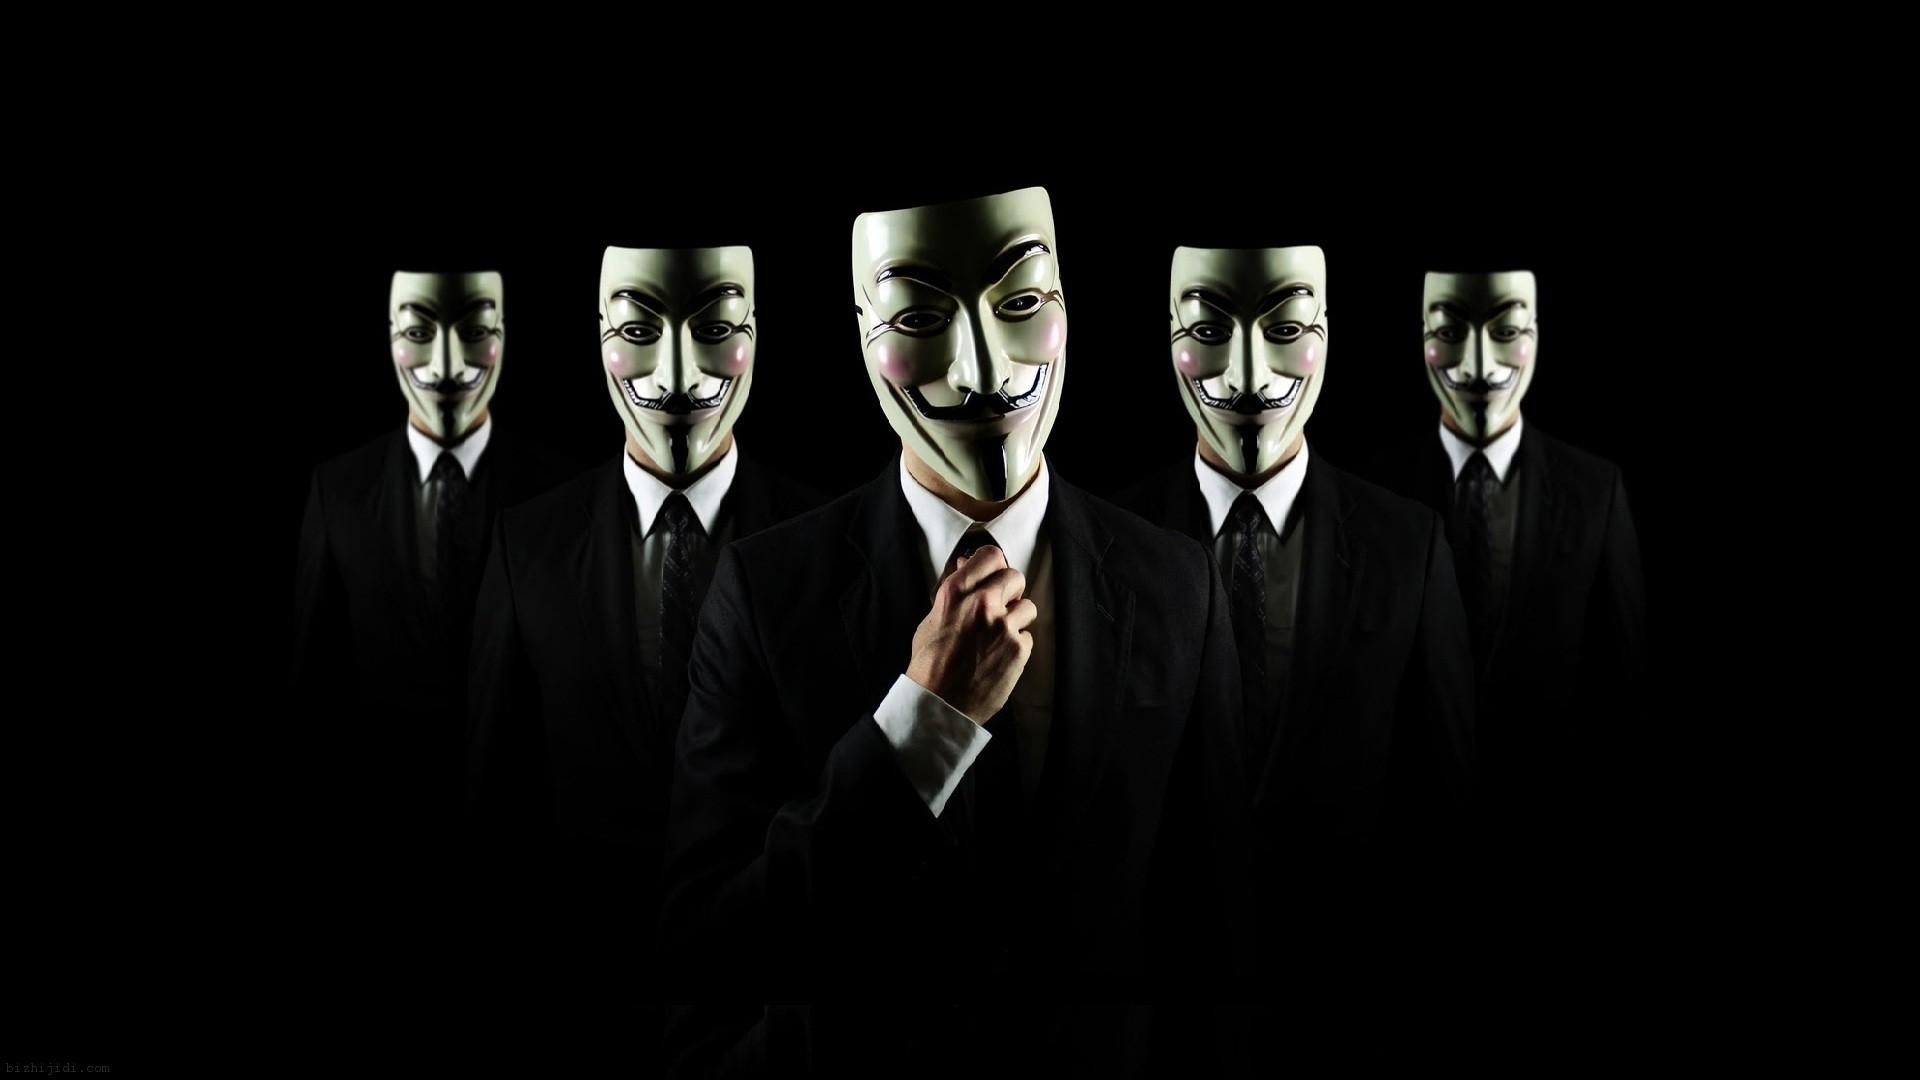 V For Vendetta Mask Wallpaper V For Vendetta Wallpap...